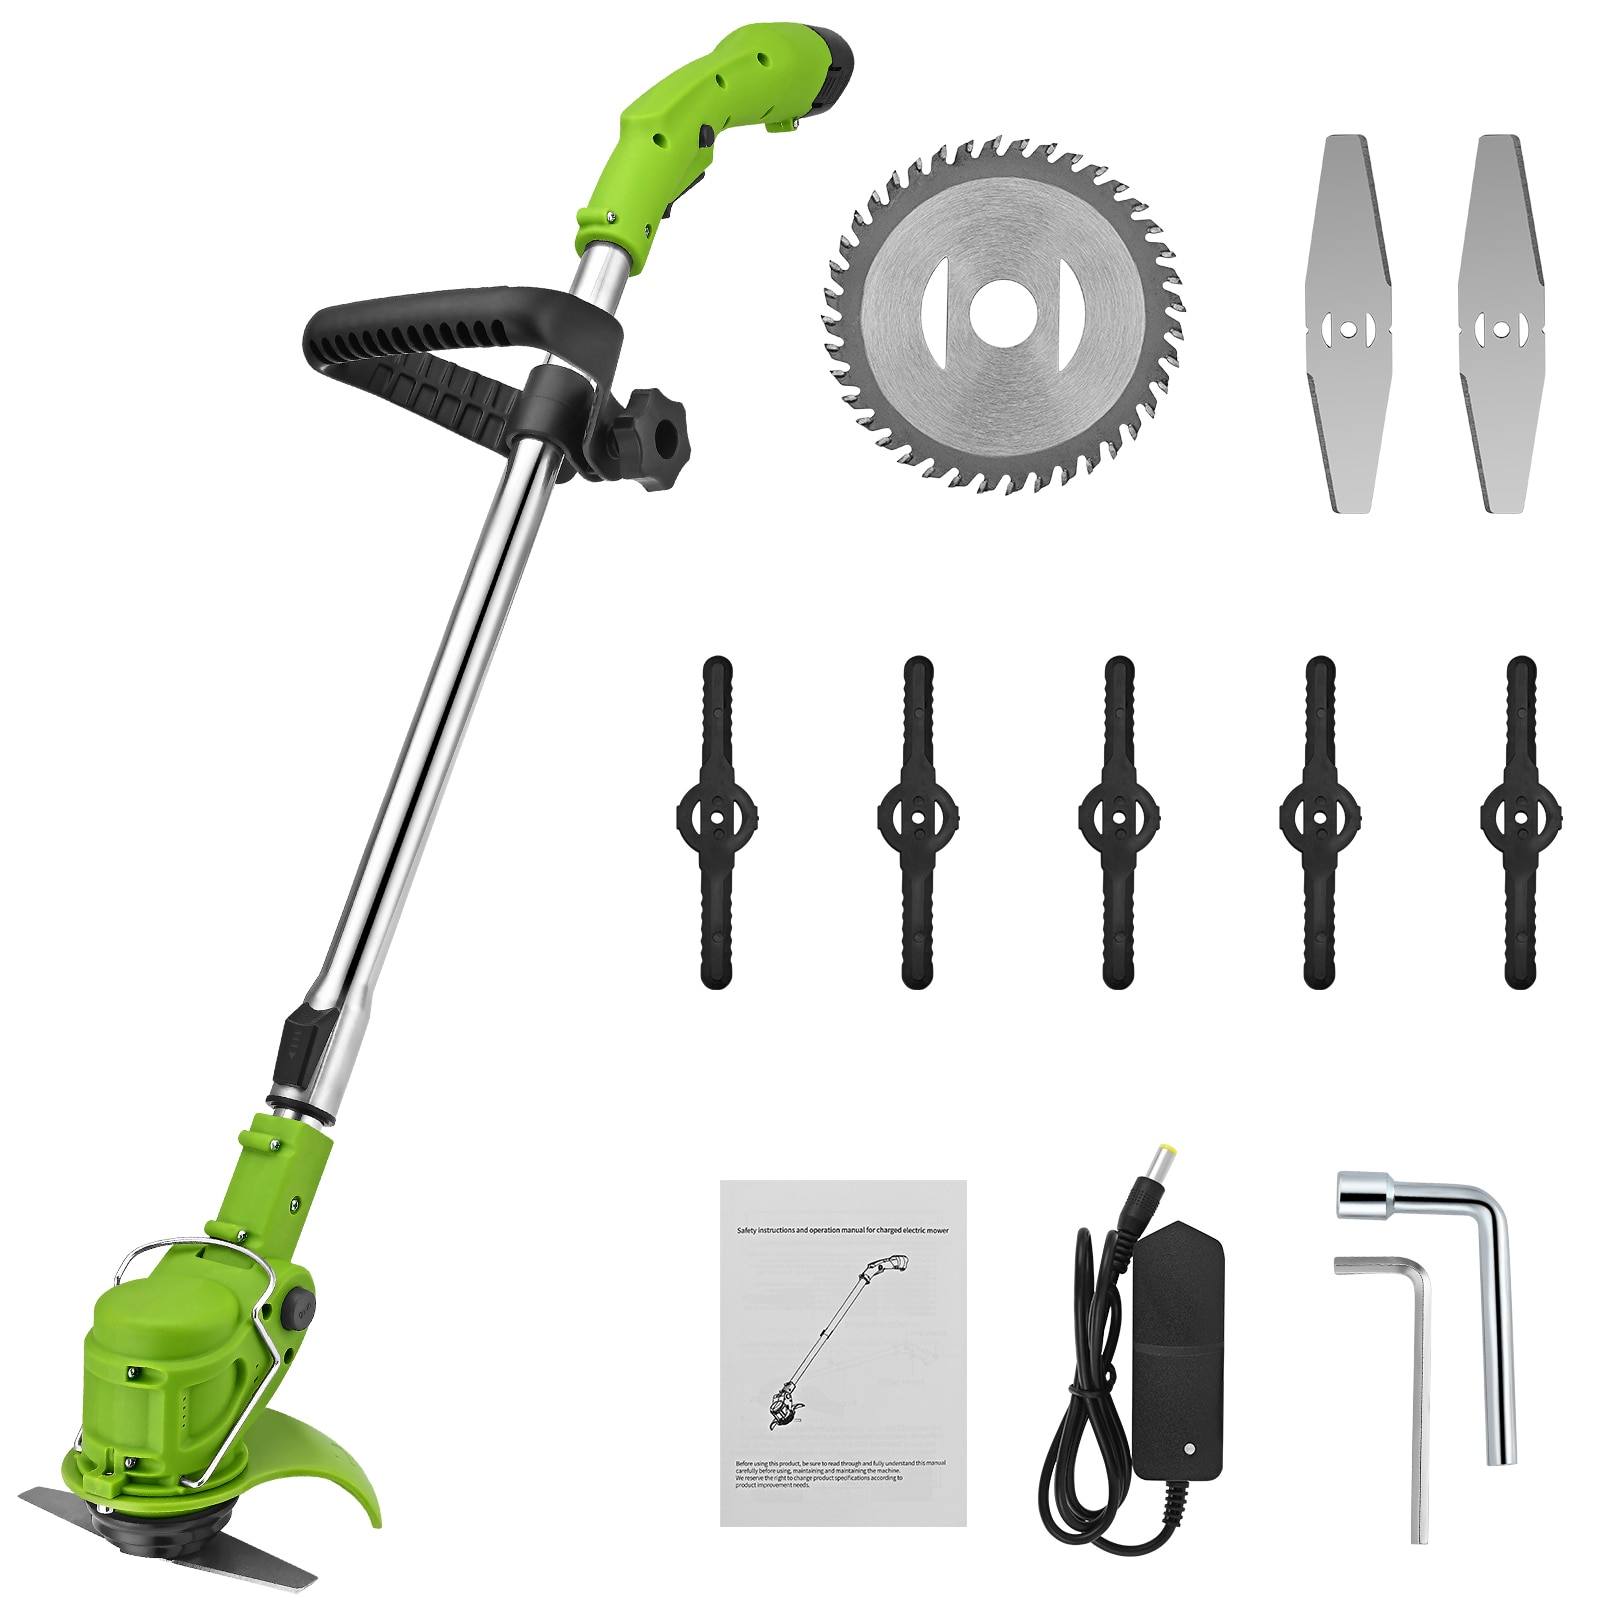 2-in-1 Electric Cordless Grass Trimmer Hedge Trimmer 12 V 3000 mAh Battery Lawn Mower For Weeding Brush Cutter Garden Tools